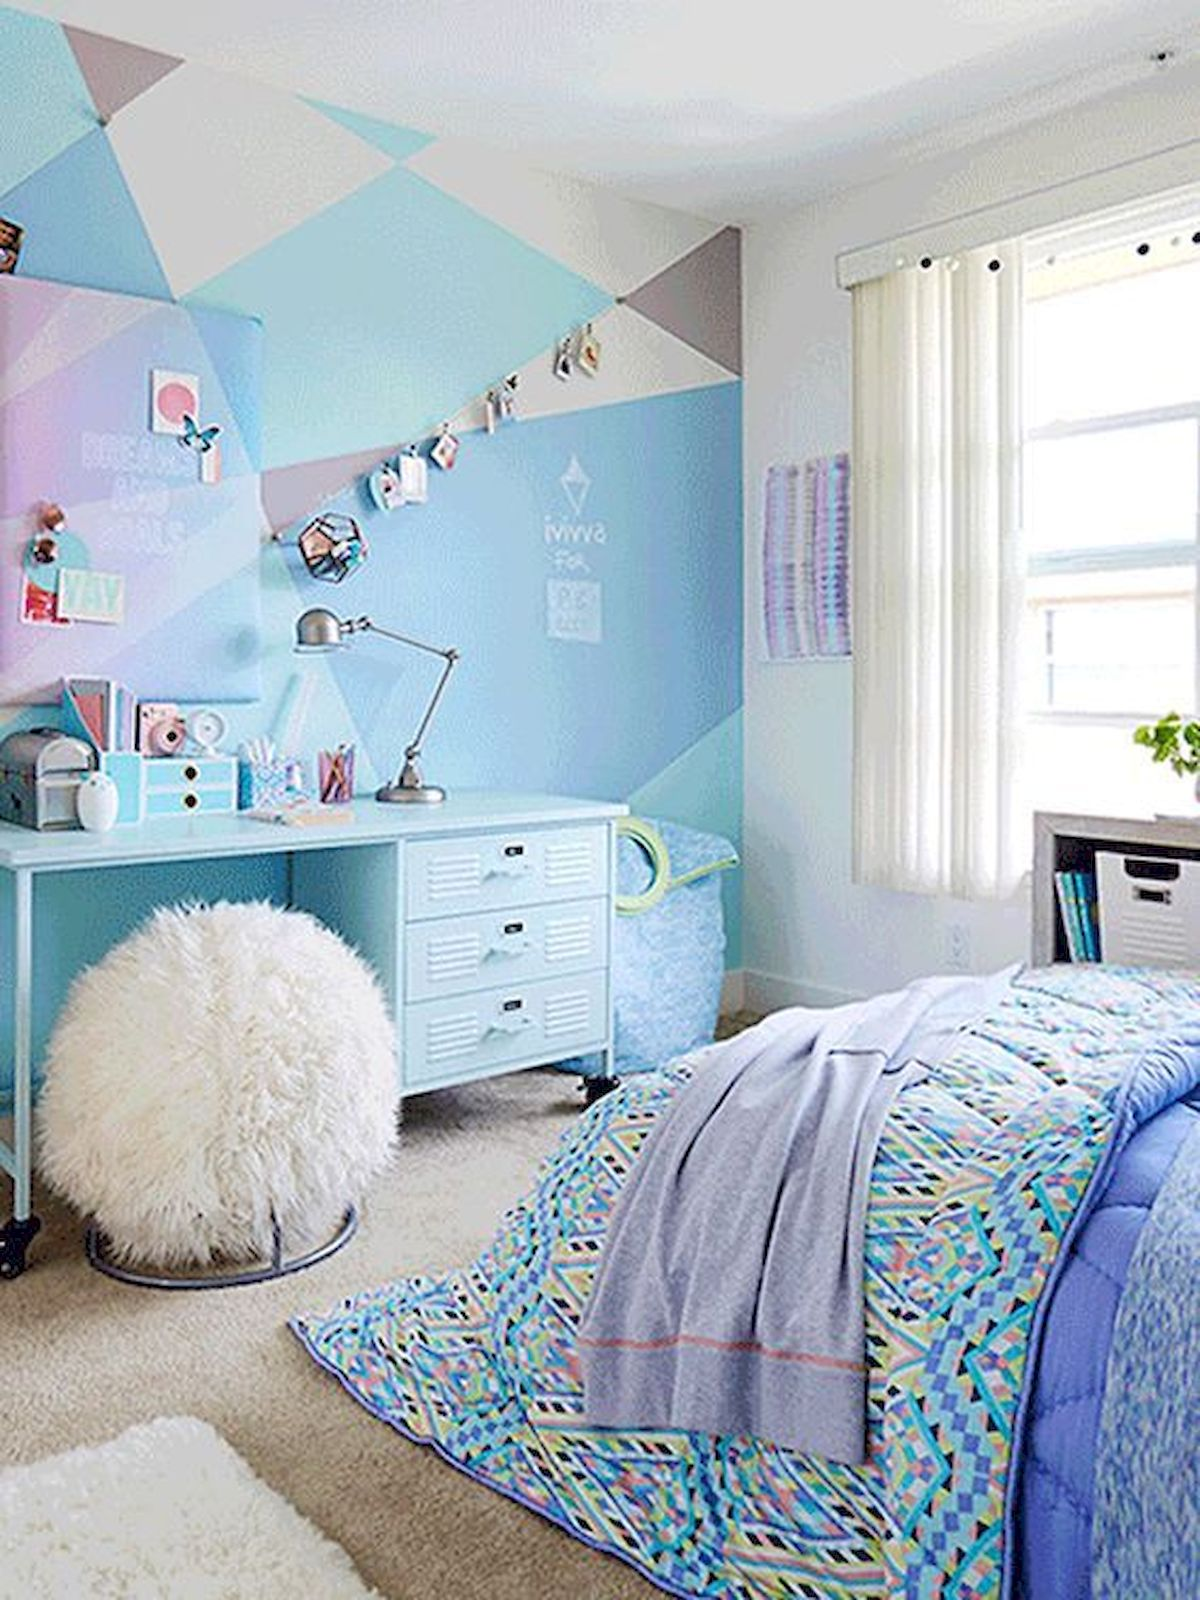 60 Cute DIY Bedroom Design And Decor Ideas For Kids (54)